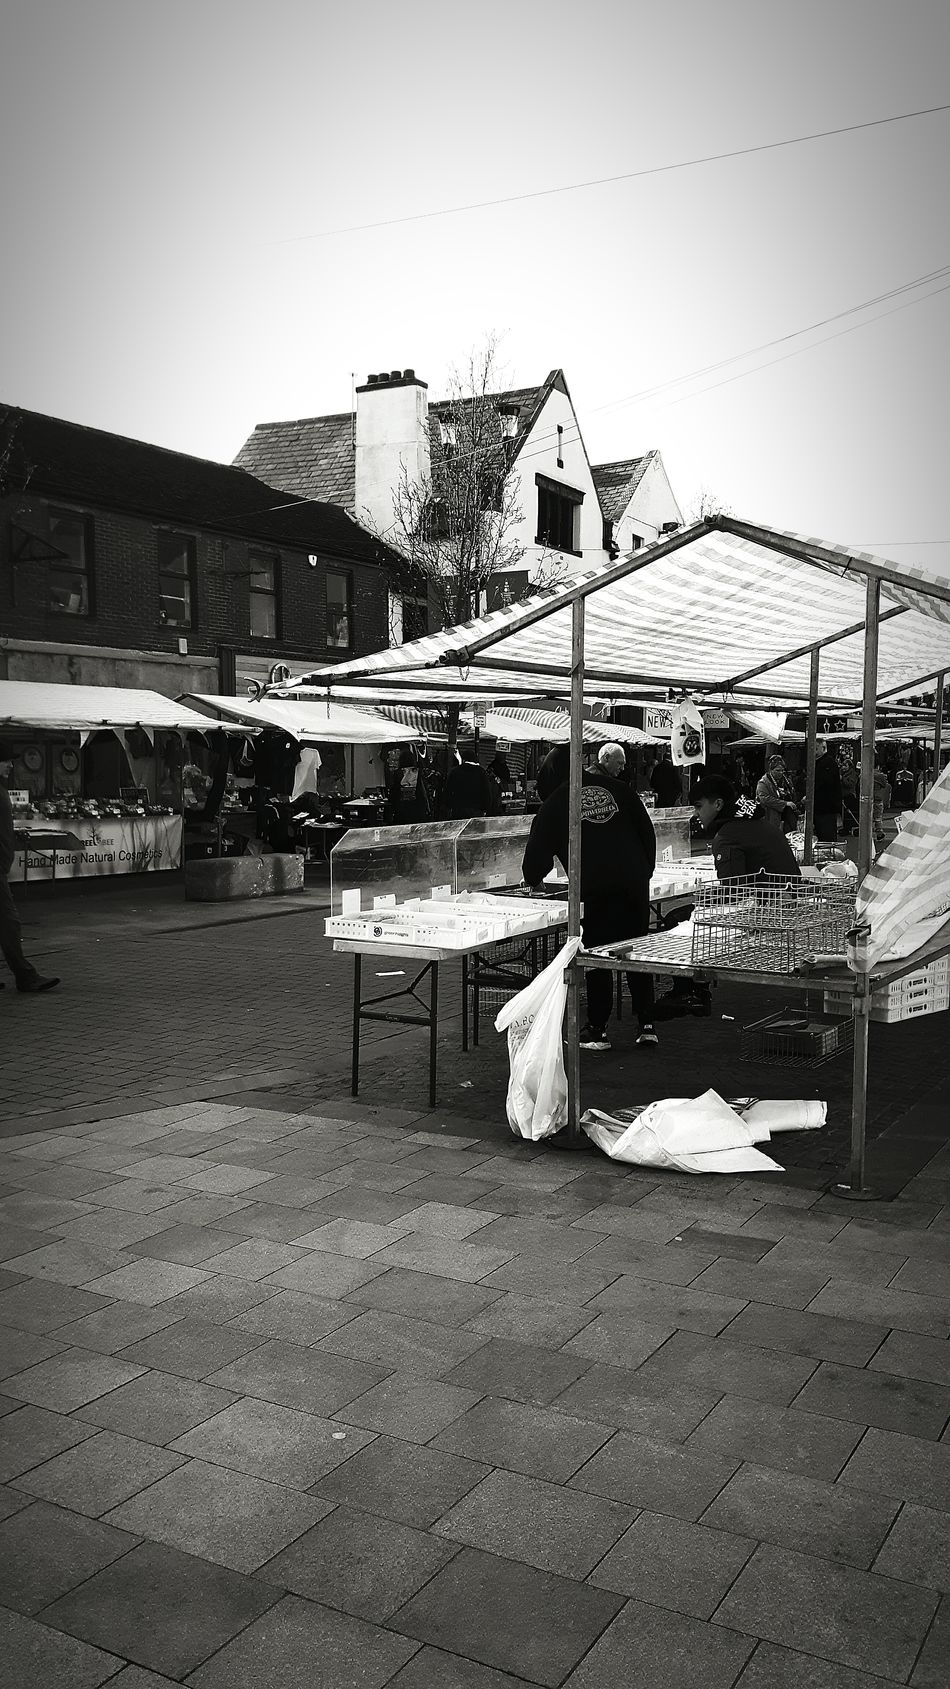 Market Traders Ormskirk Market. Market Stalls Famous Tourist Attractions EyeEm Best Shots - Black + White Classic Traders Town.